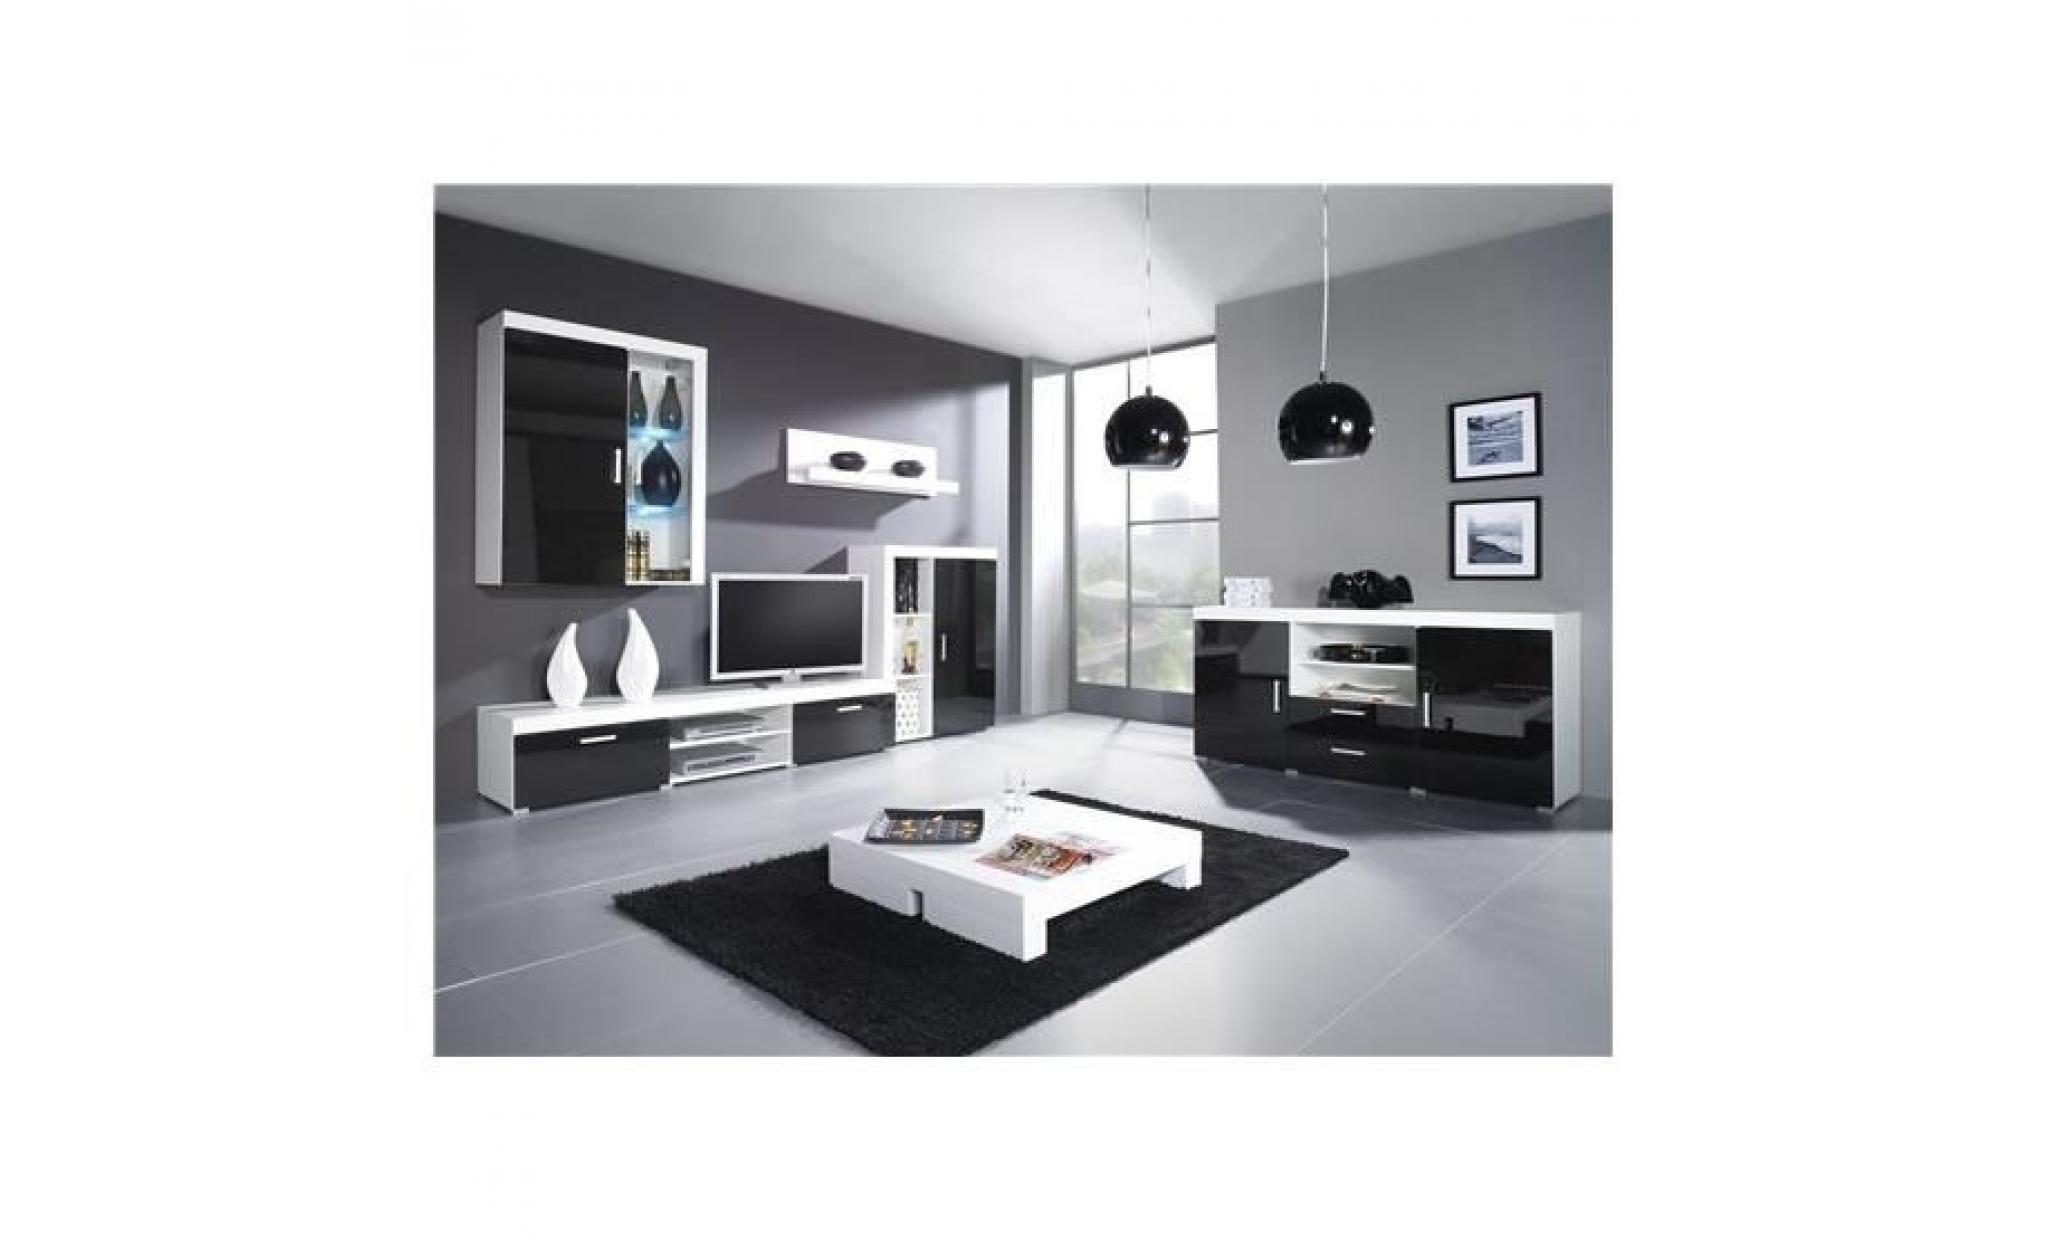 meuble tv mural design mamba avec commode blanc et noir achat vente meuble tv pas cher. Black Bedroom Furniture Sets. Home Design Ideas